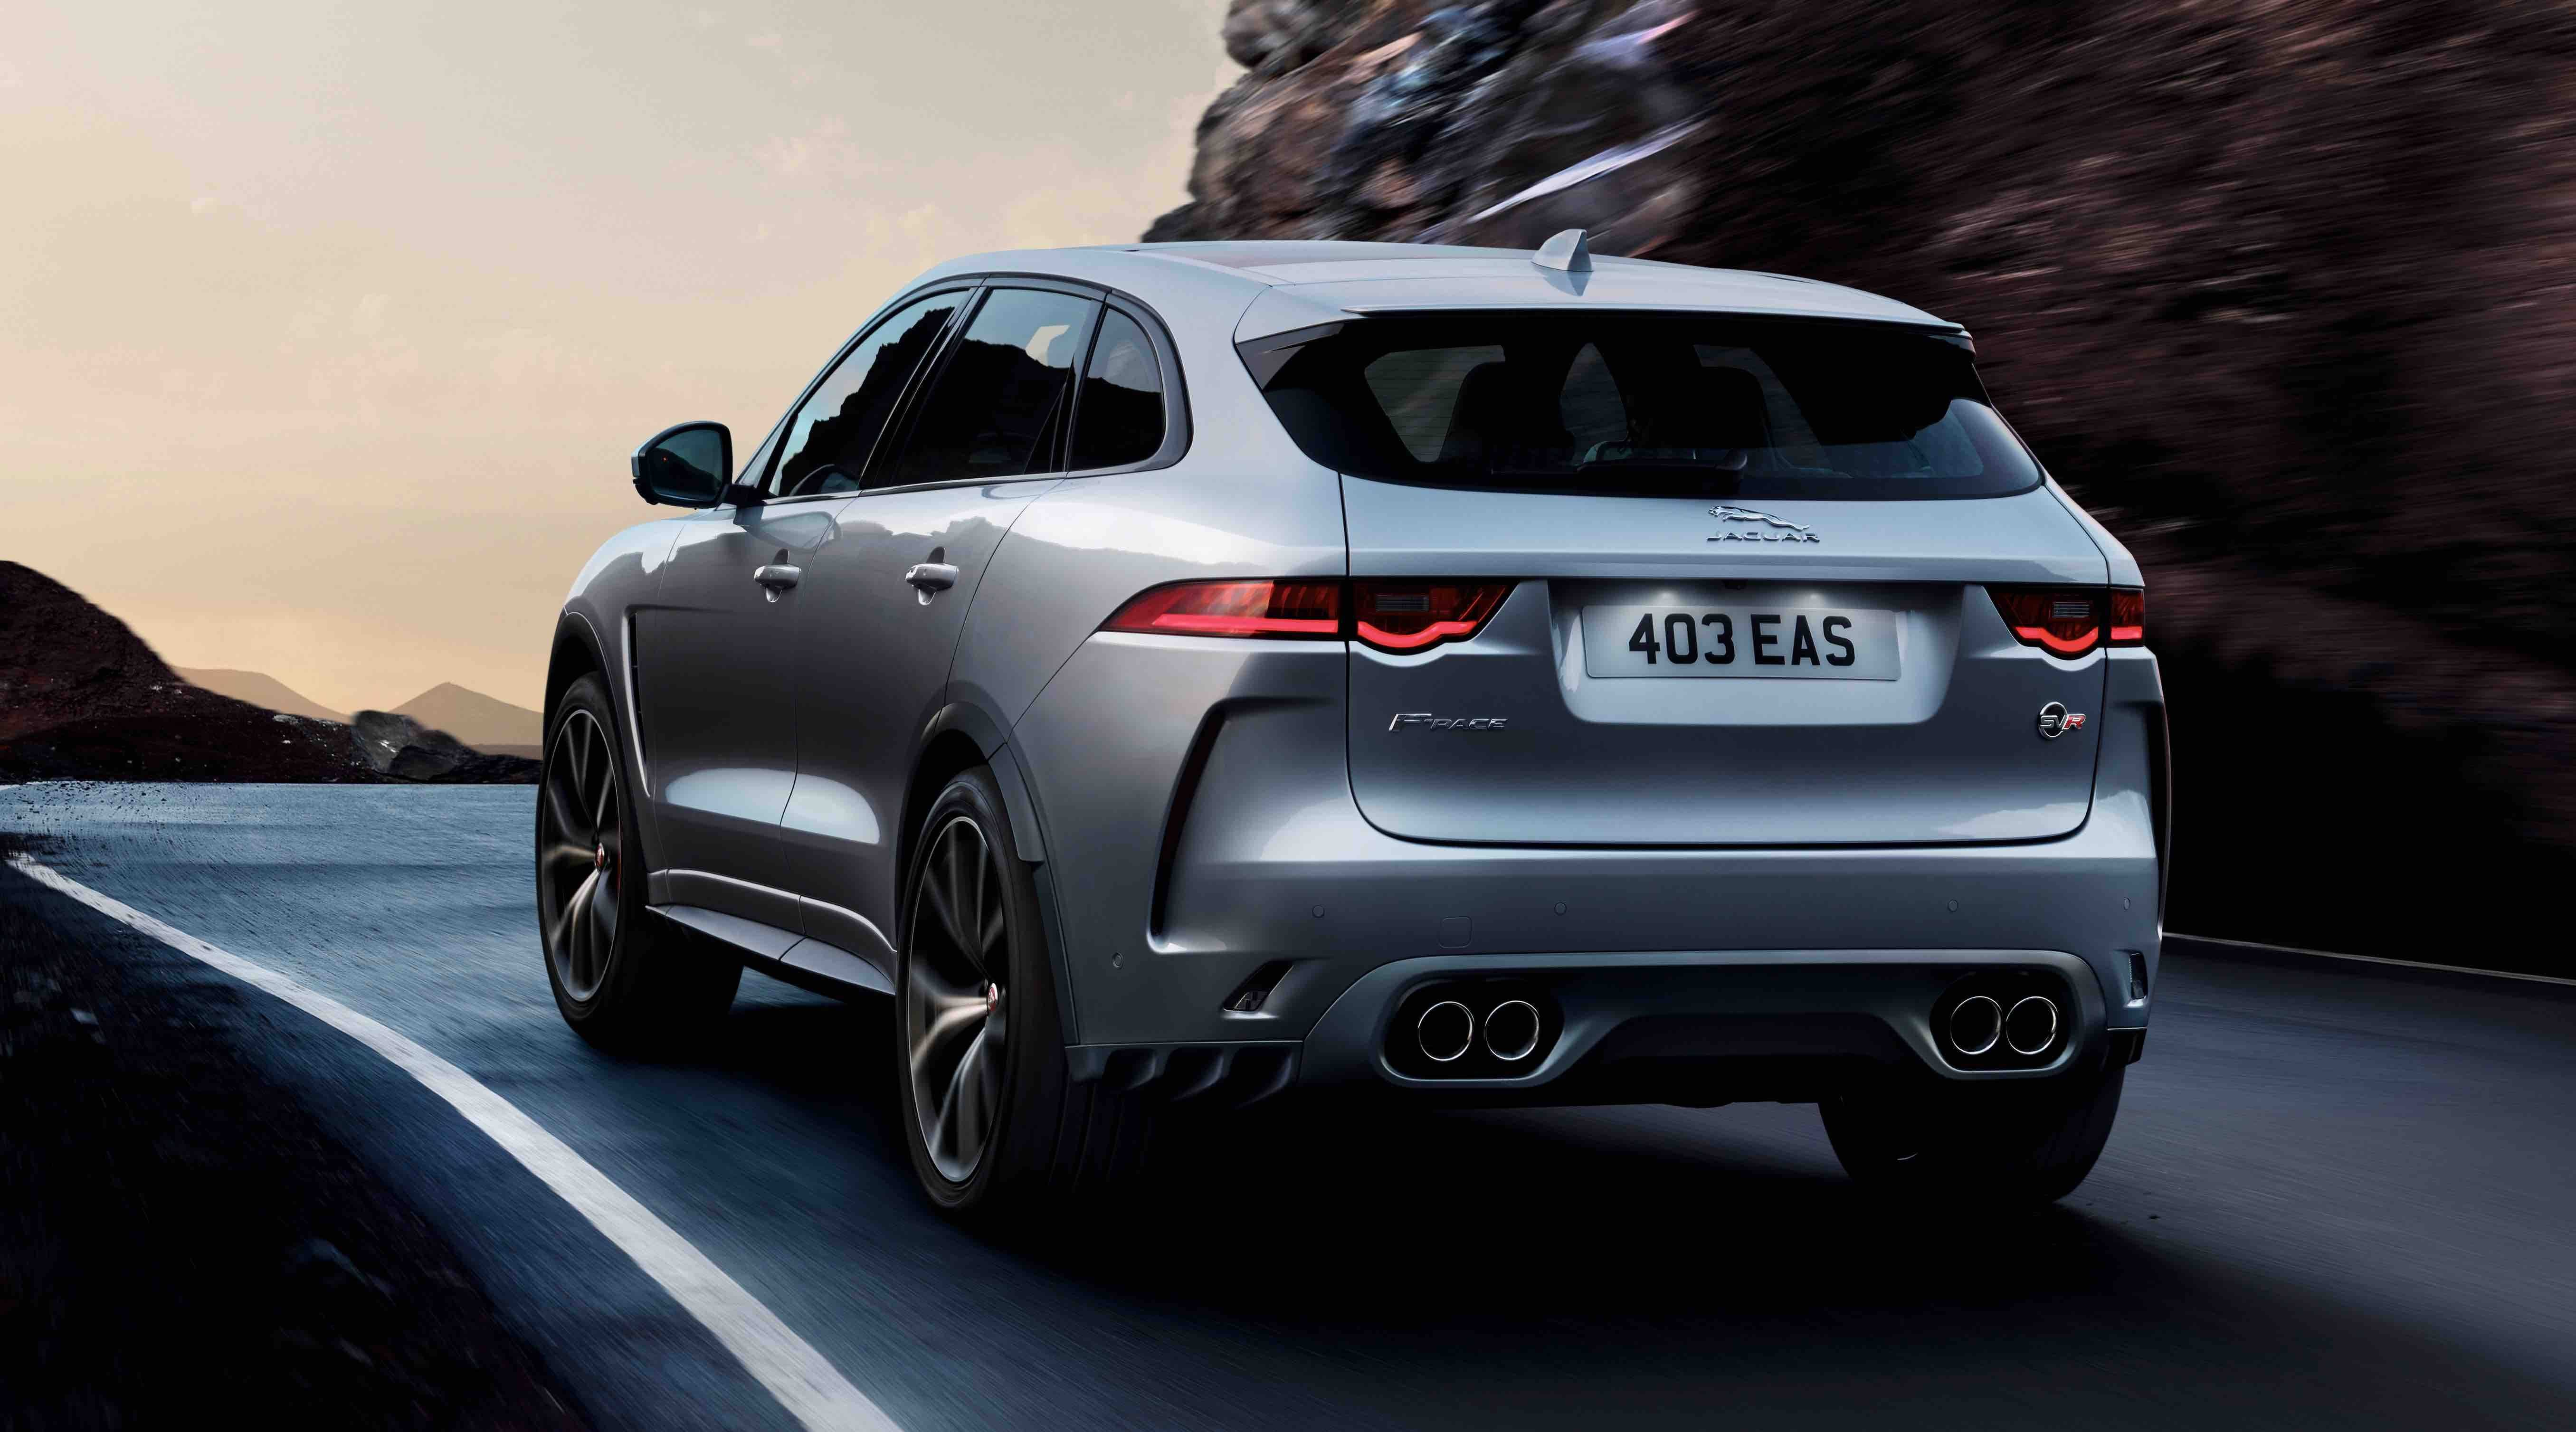 44 Gallery of Jaguar F Pace 2020 New Concept Photos for Jaguar F Pace 2020 New Concept